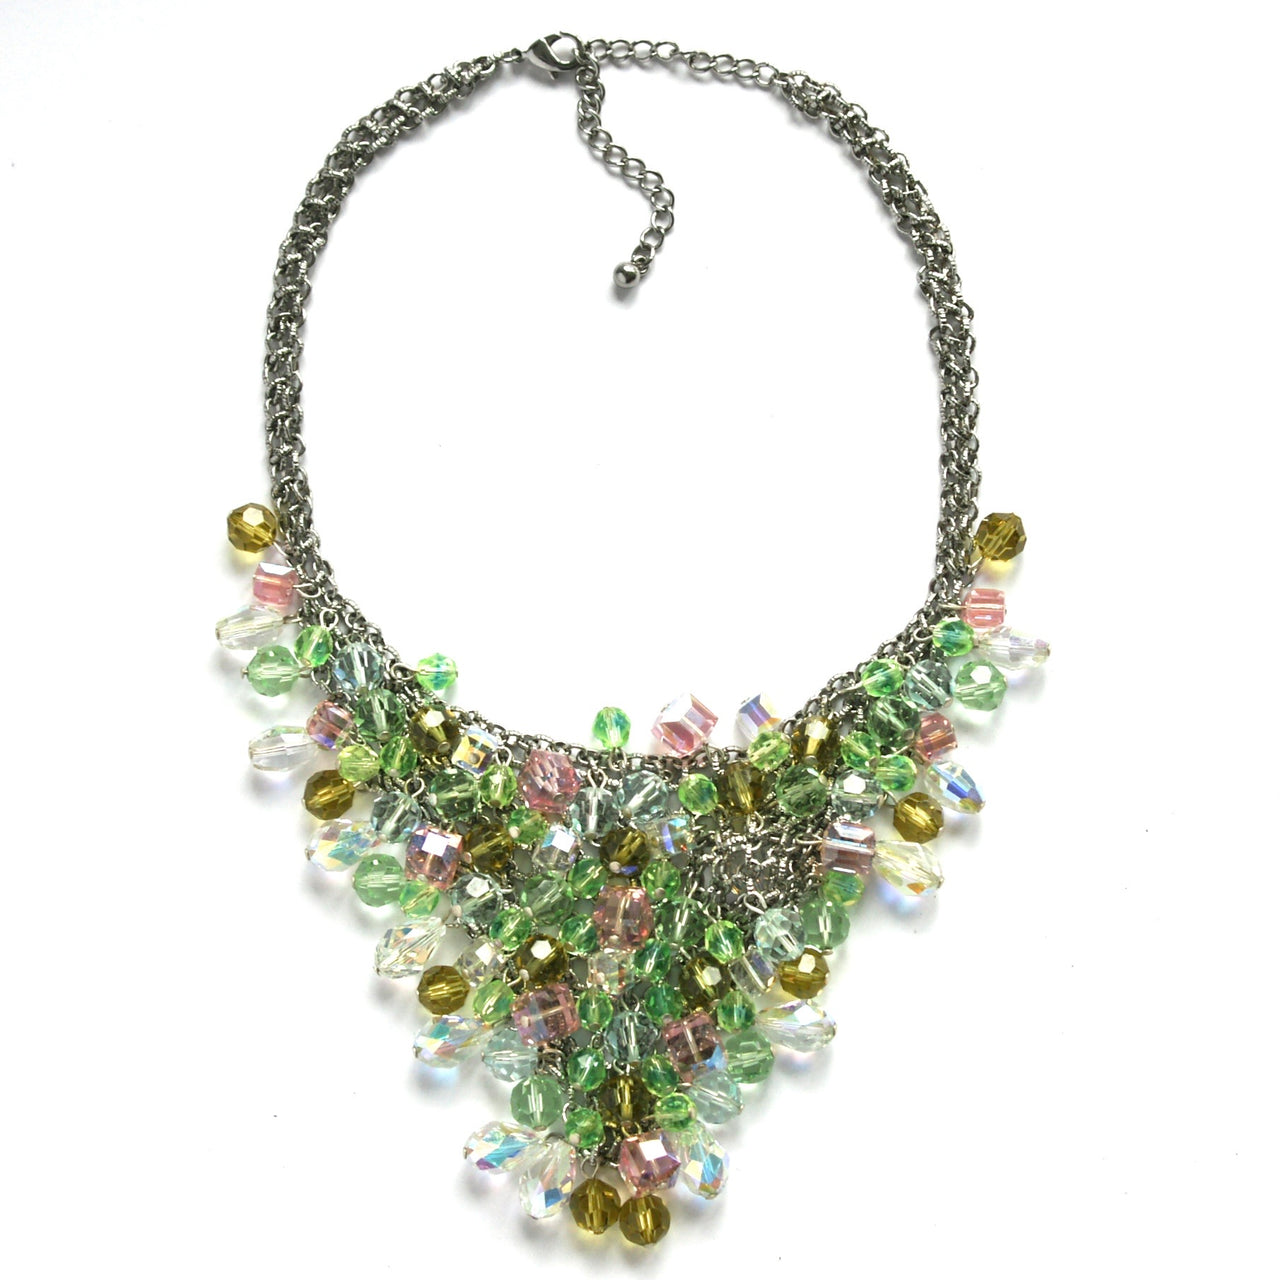 Vintage Waterfall Necklace in pastel crystals by Sarah Booth